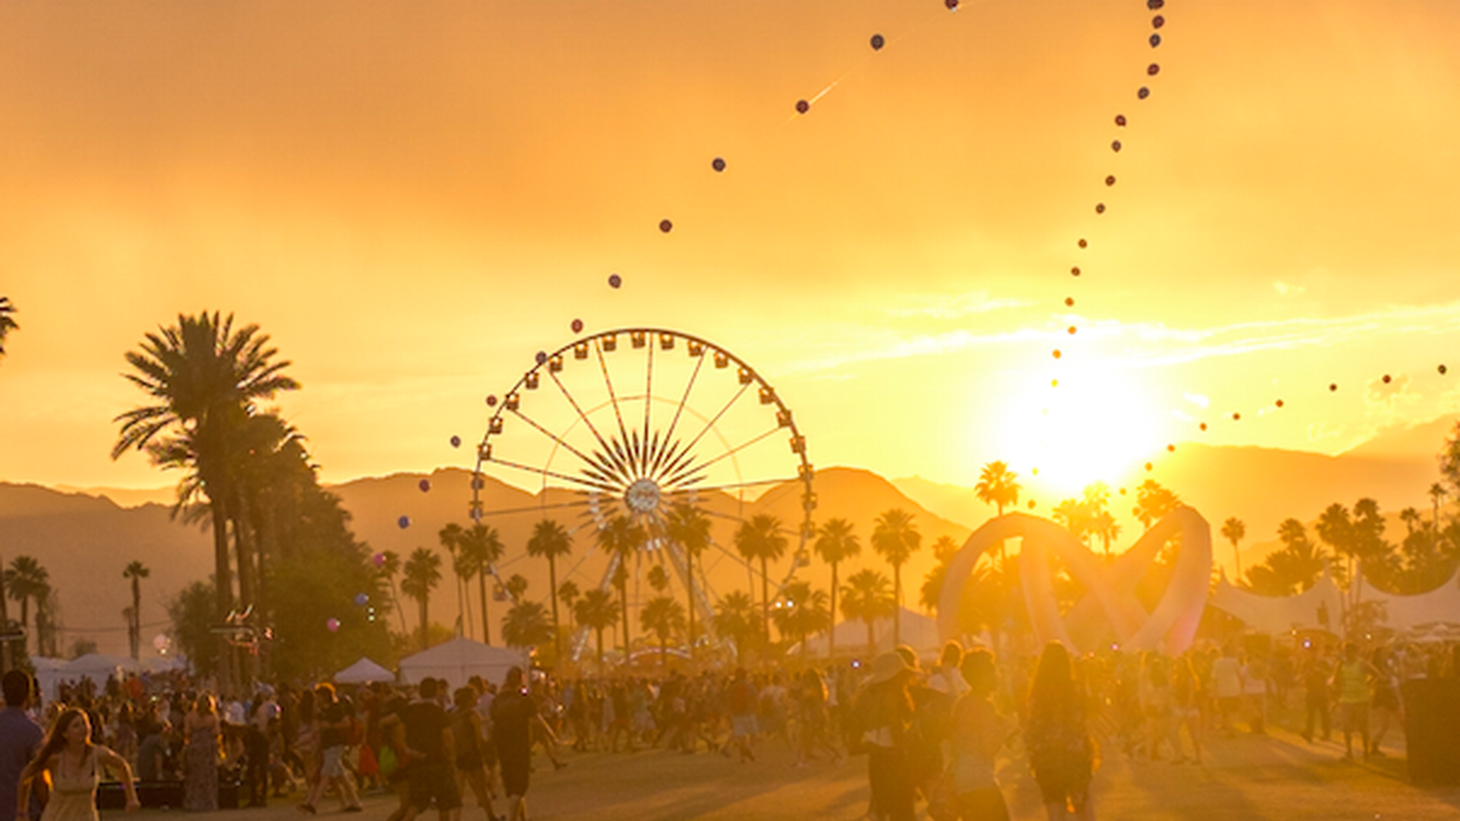 The experience for women at Coachella is filled with stories of groping and unwanted touching. Could the festival be doing more to prevent seuxal harrassment?